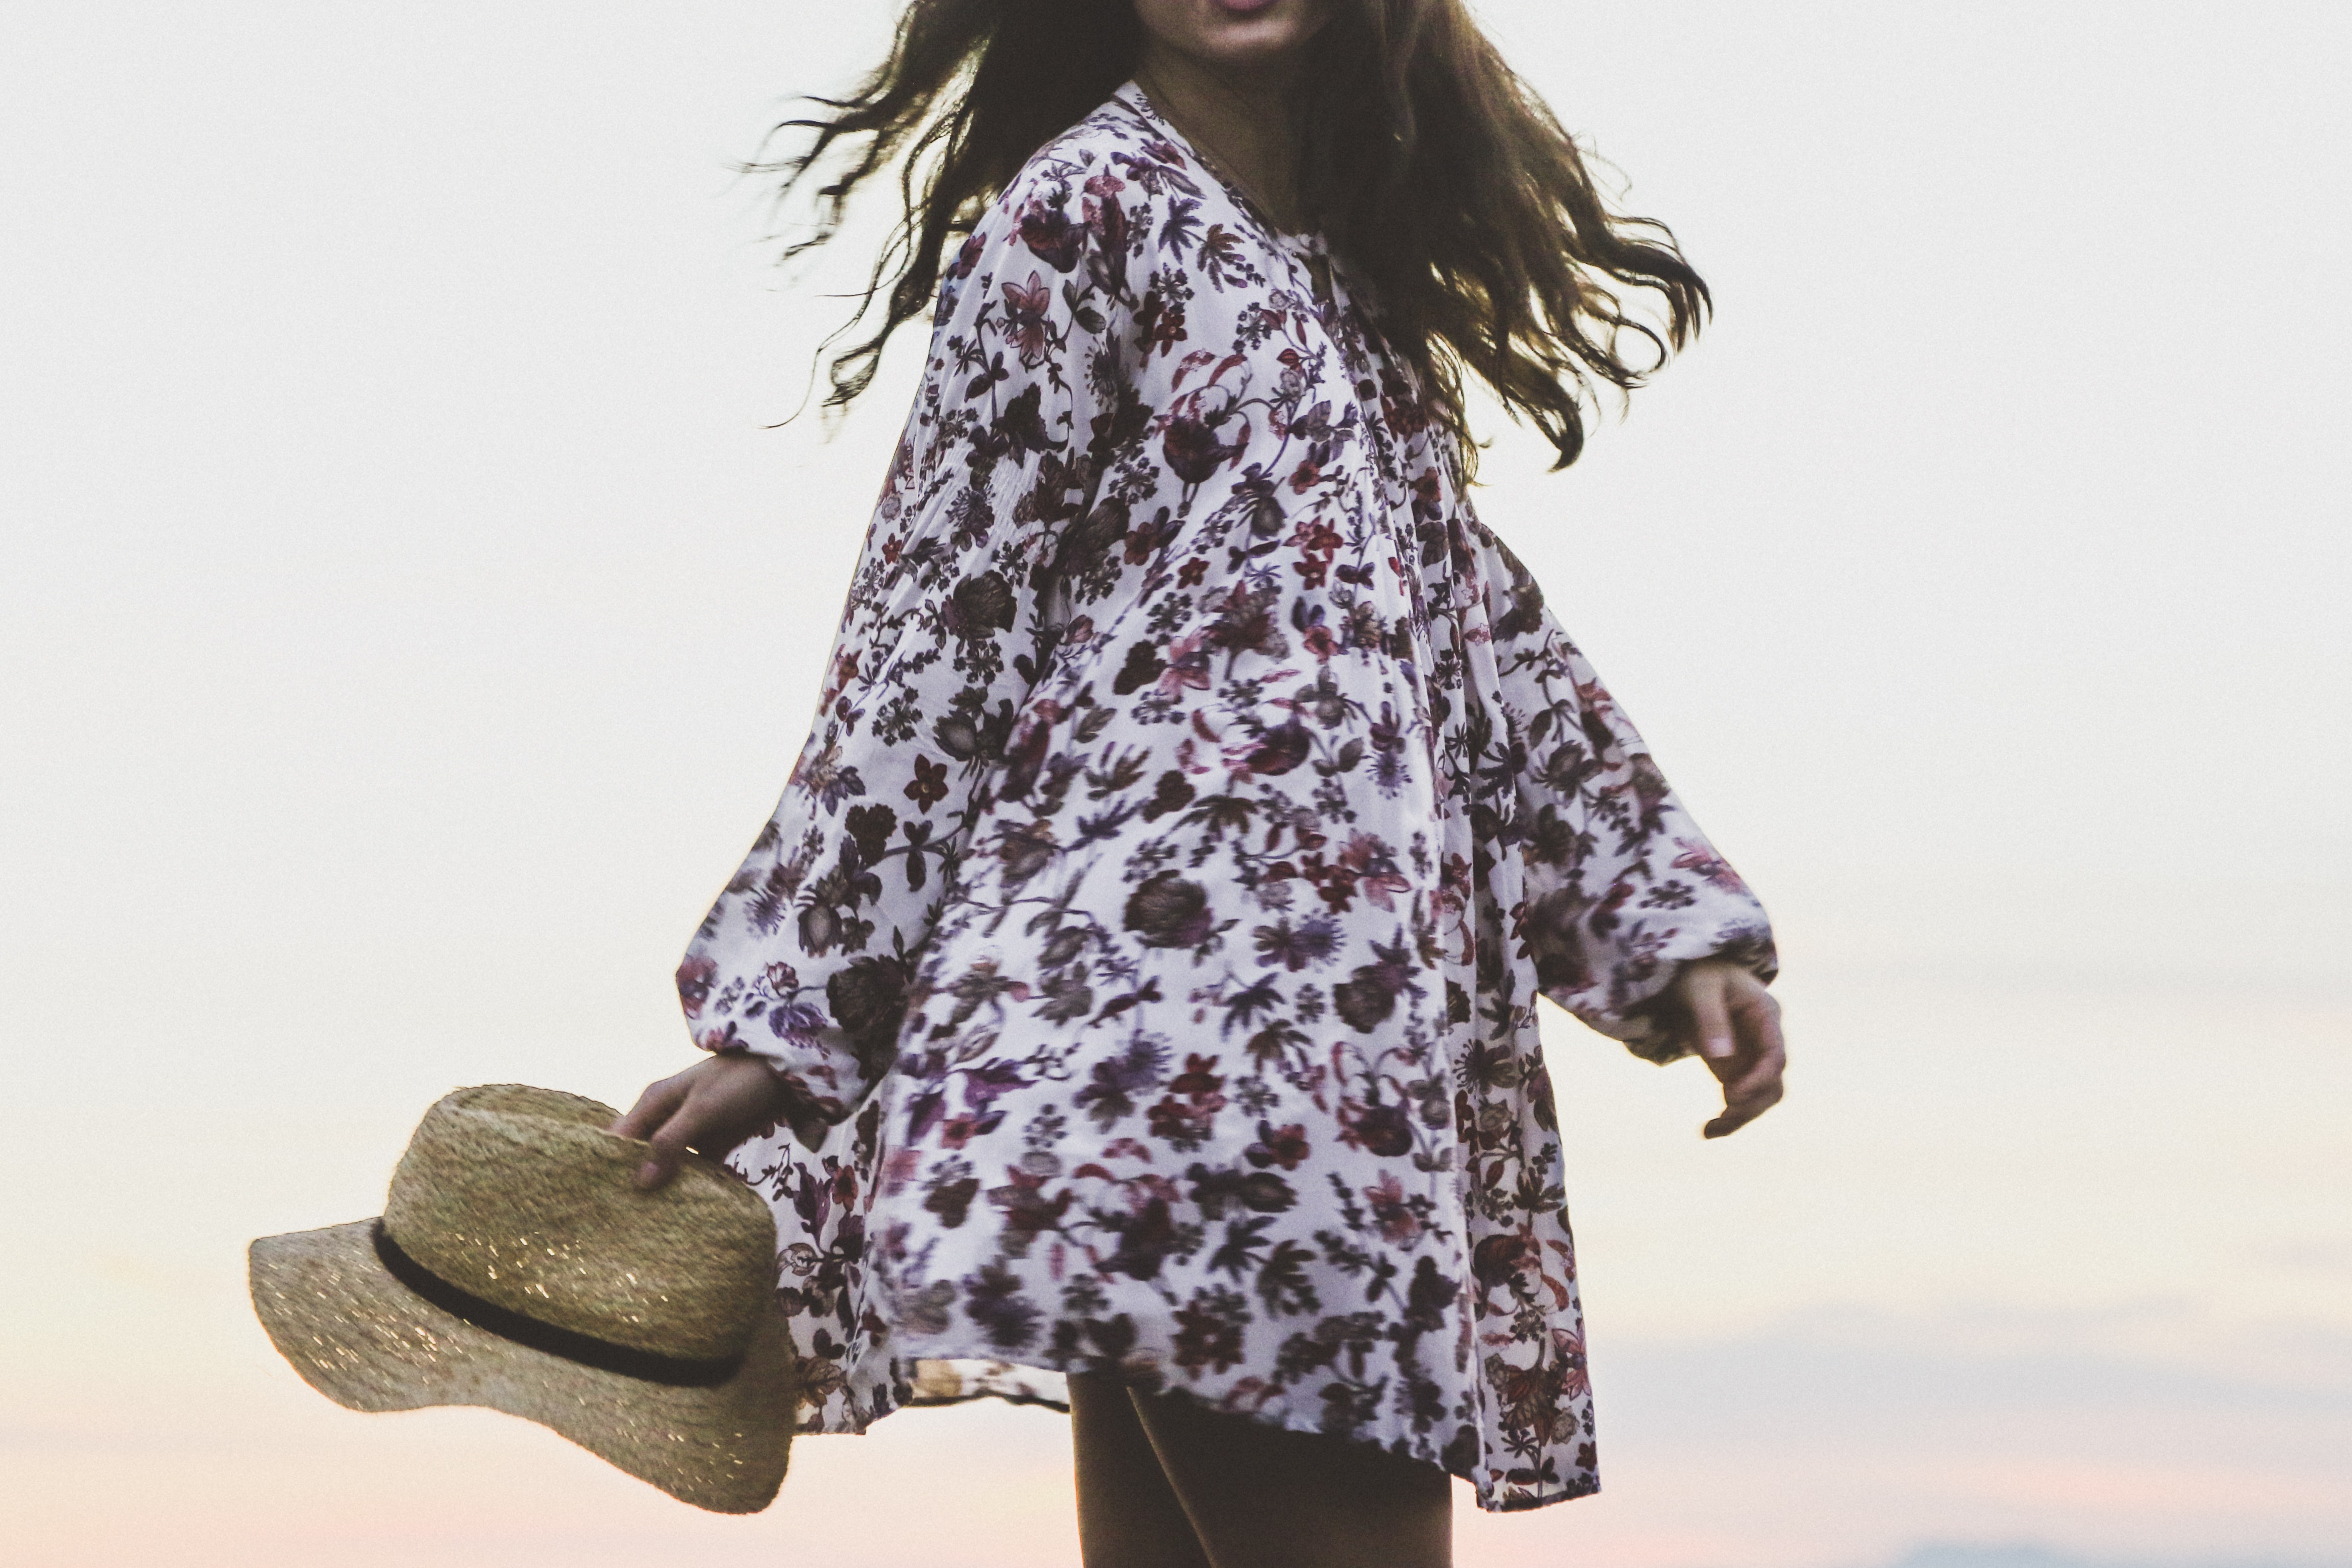 woman wearing white and brown floral long-sleeved shirt while holding brown fedora hat